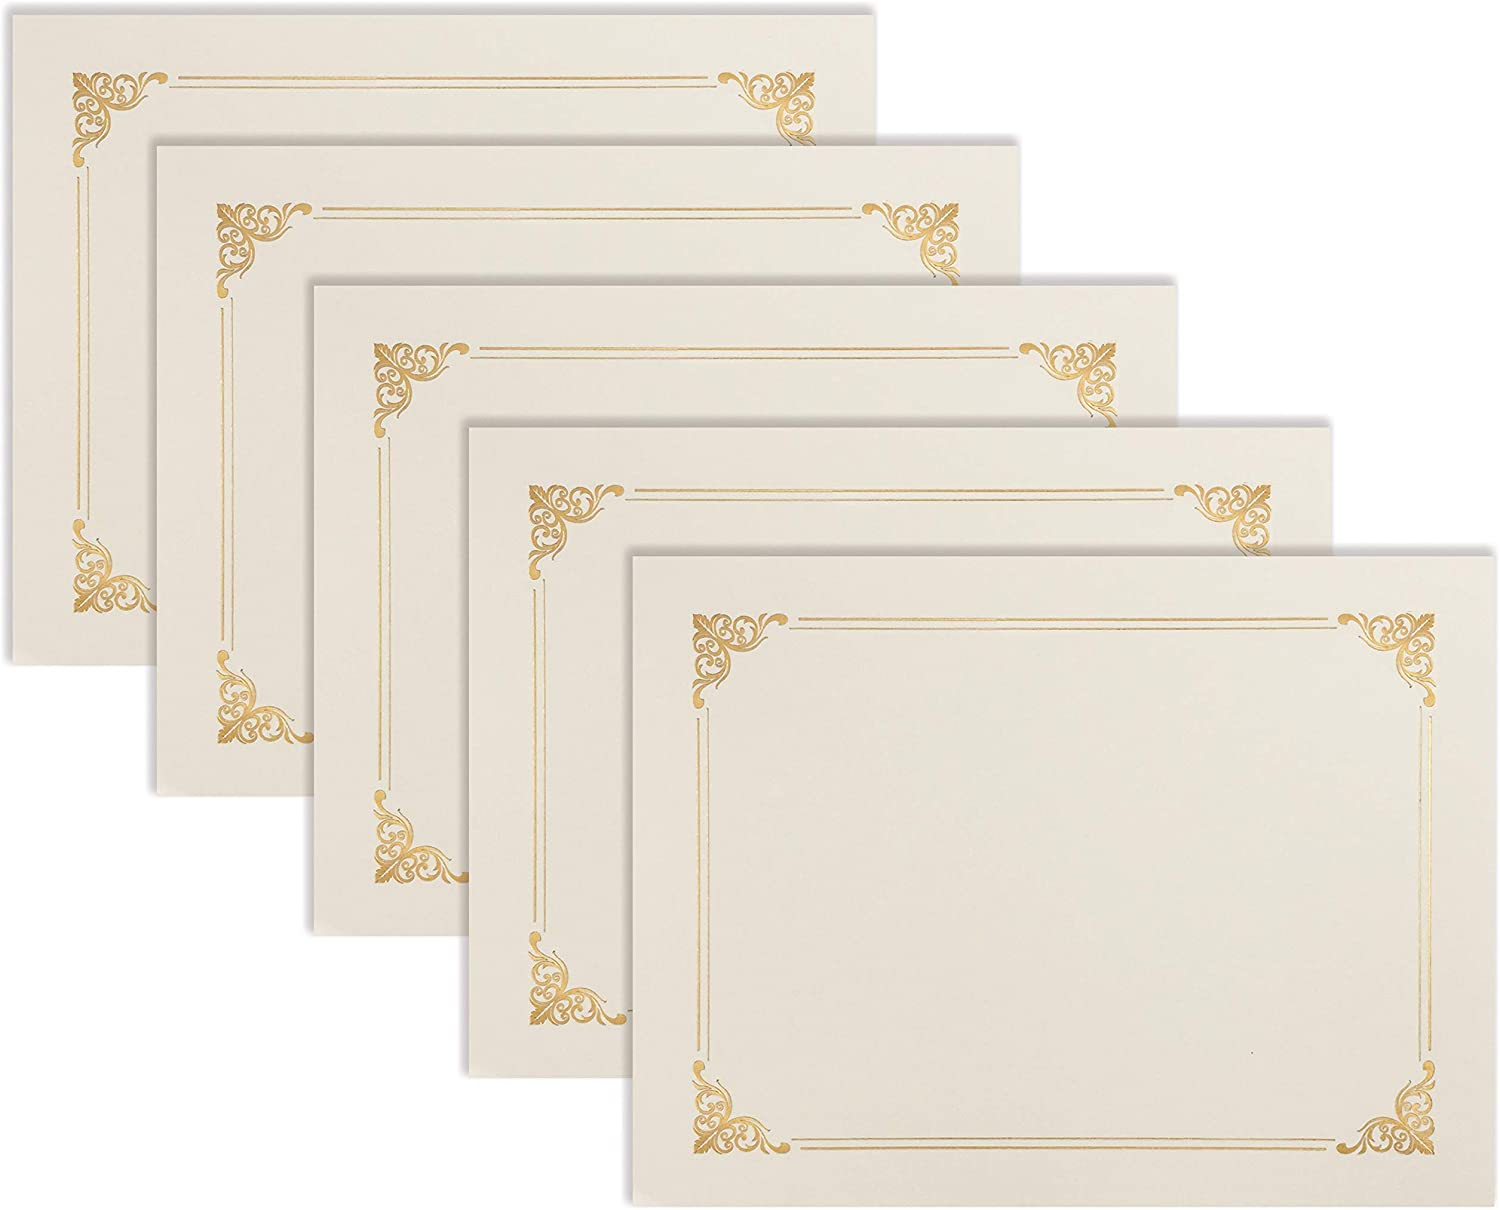 25 Pack Ivory Certificate Holders, Diploma Holders, Document Covers with Gold Foil Border, by Better Office Products, for Letter Size Paper, 25 Count, Ivory White